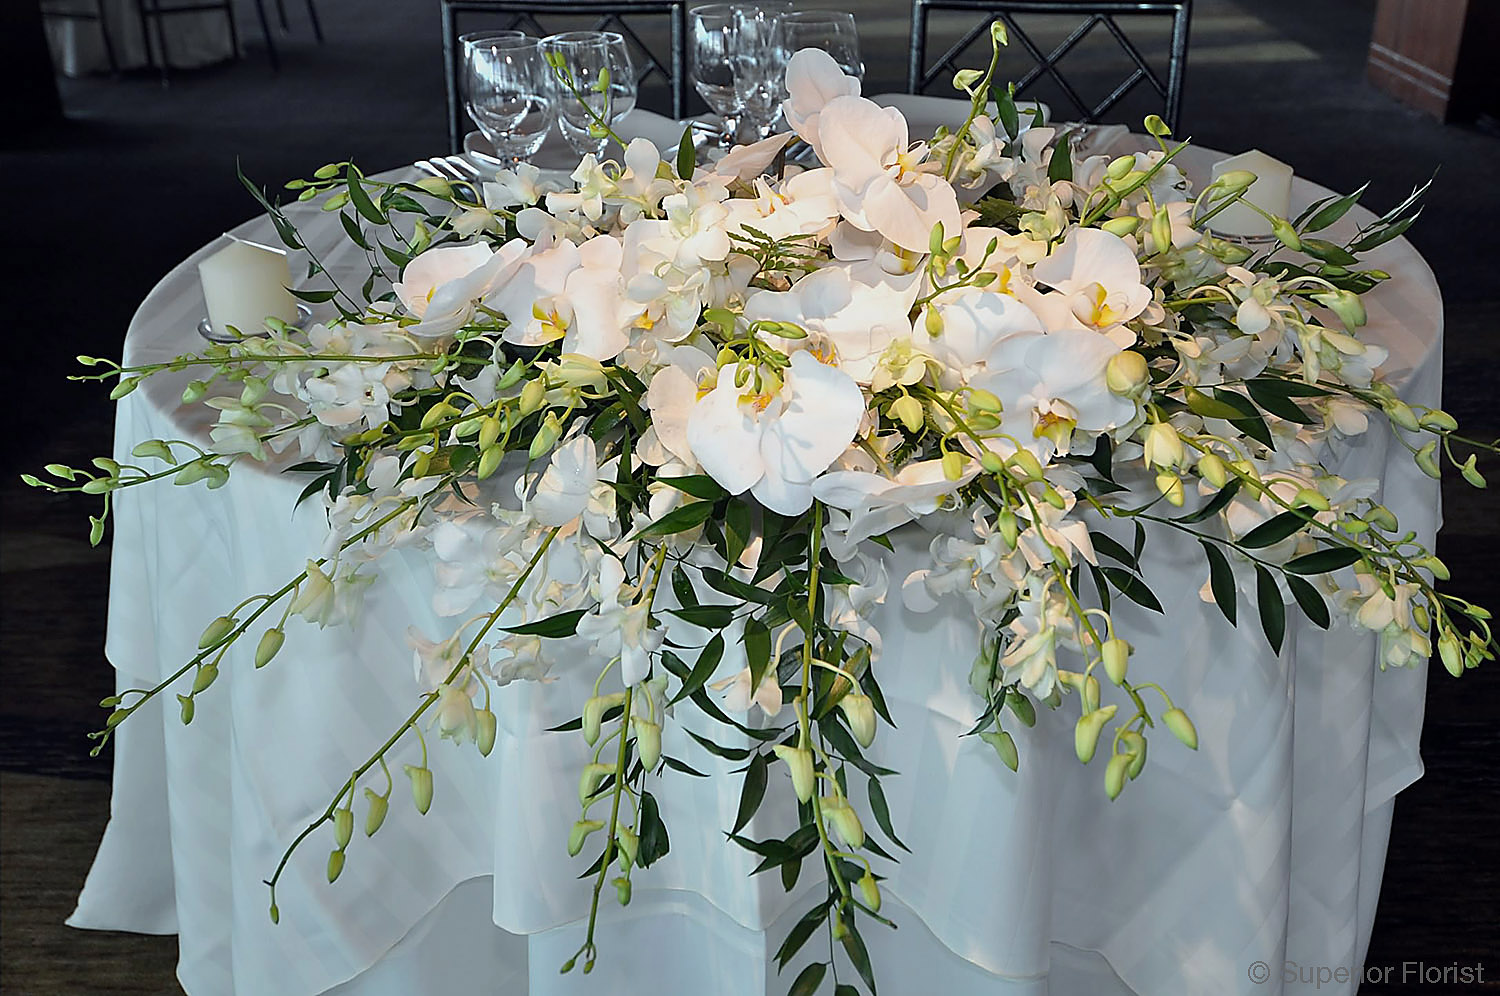 Superior Florist – Sweetheart Tables: Arrangement of Dendrobiums, Phalaenopsis orchids and Italian Ruscus.